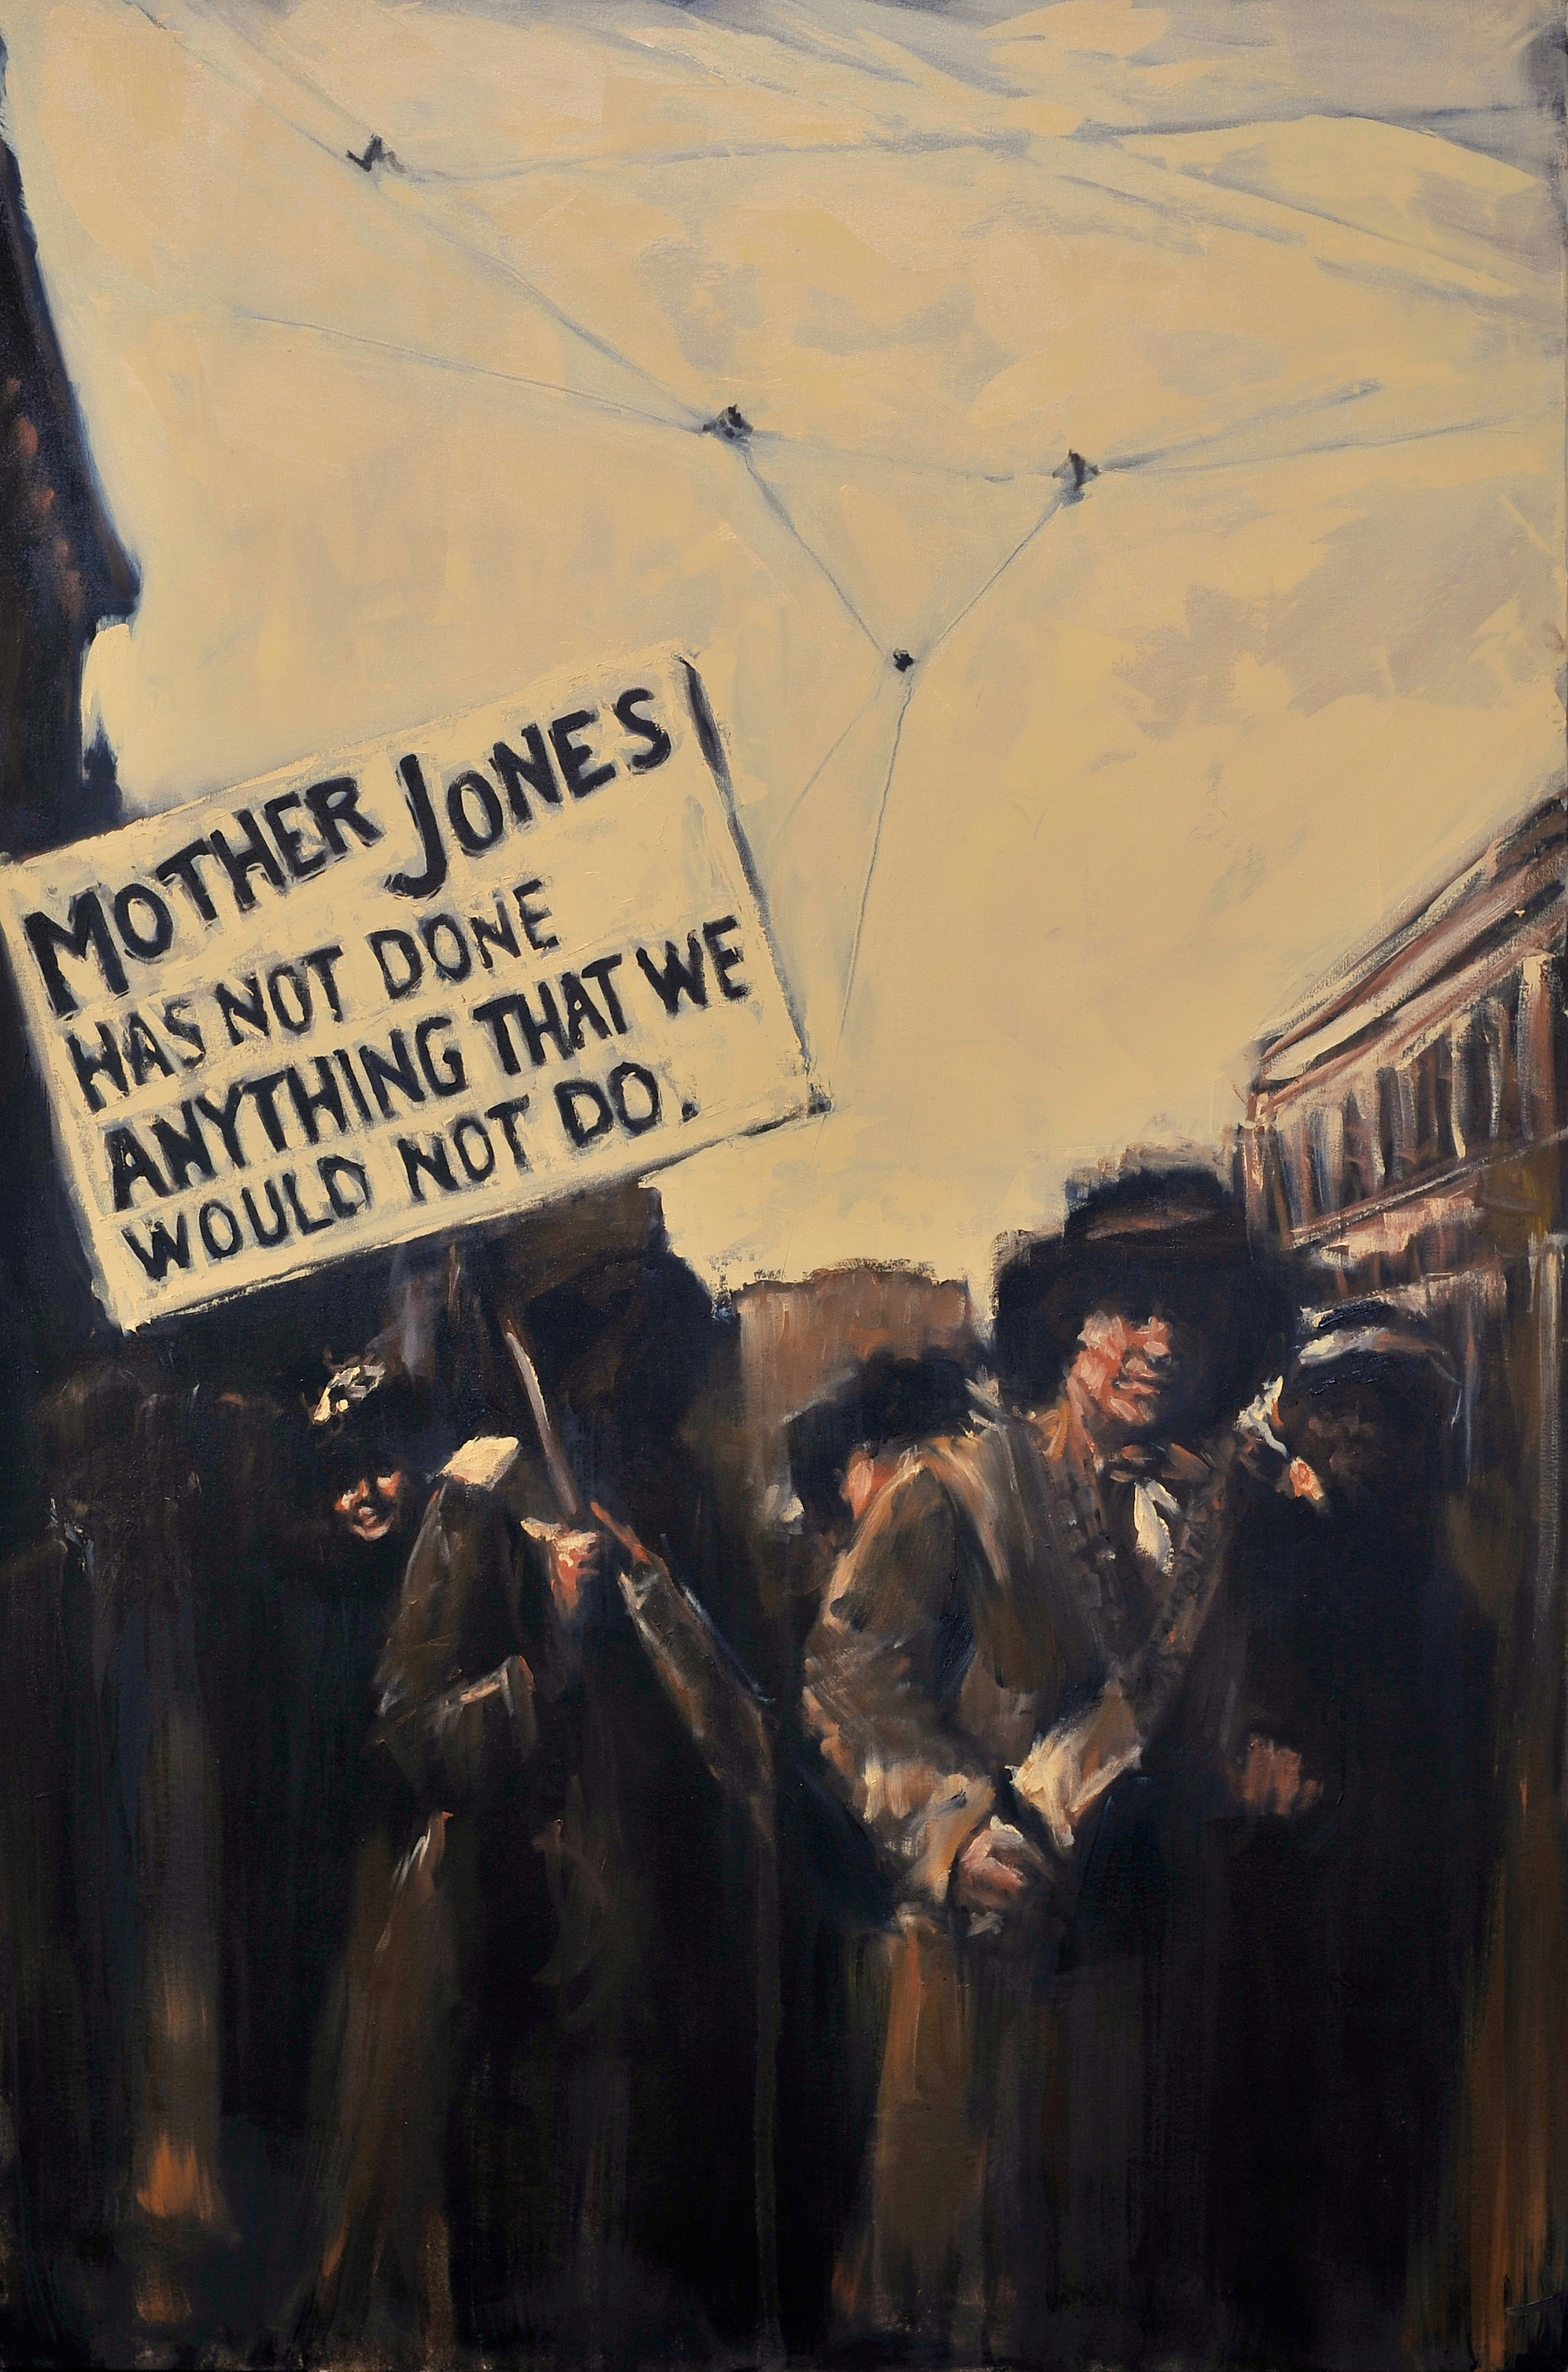 Mother Jones has not done anything we would not do